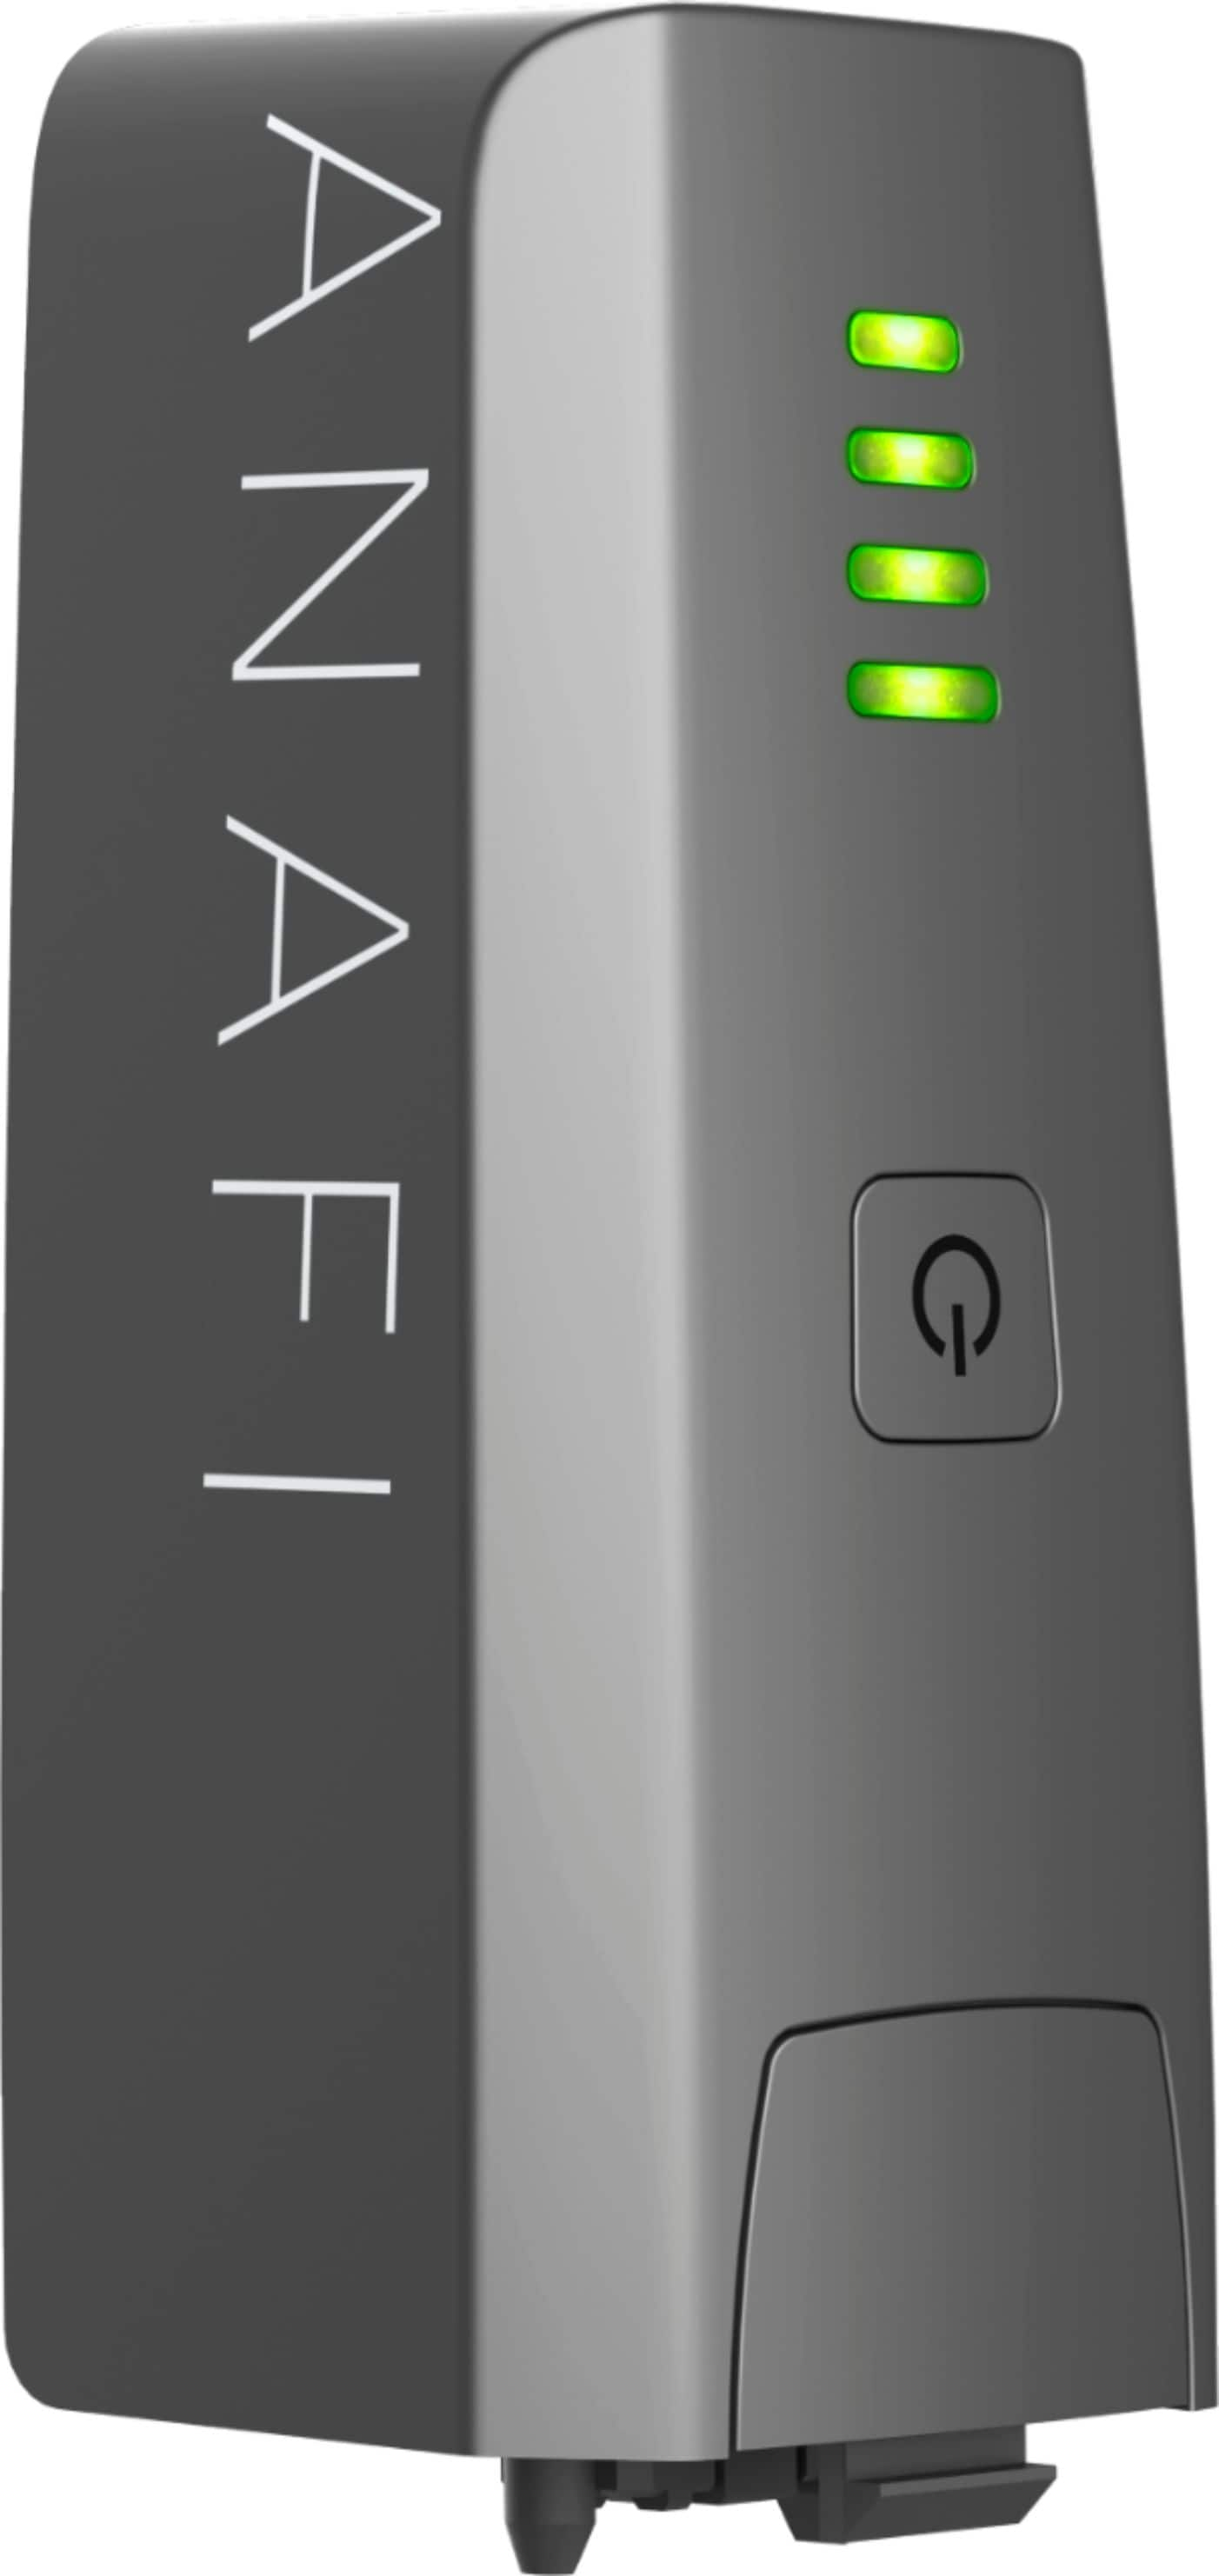 Best Buy Parrot Anafi battery $75, Propellors $15  AC need to buy 3 items